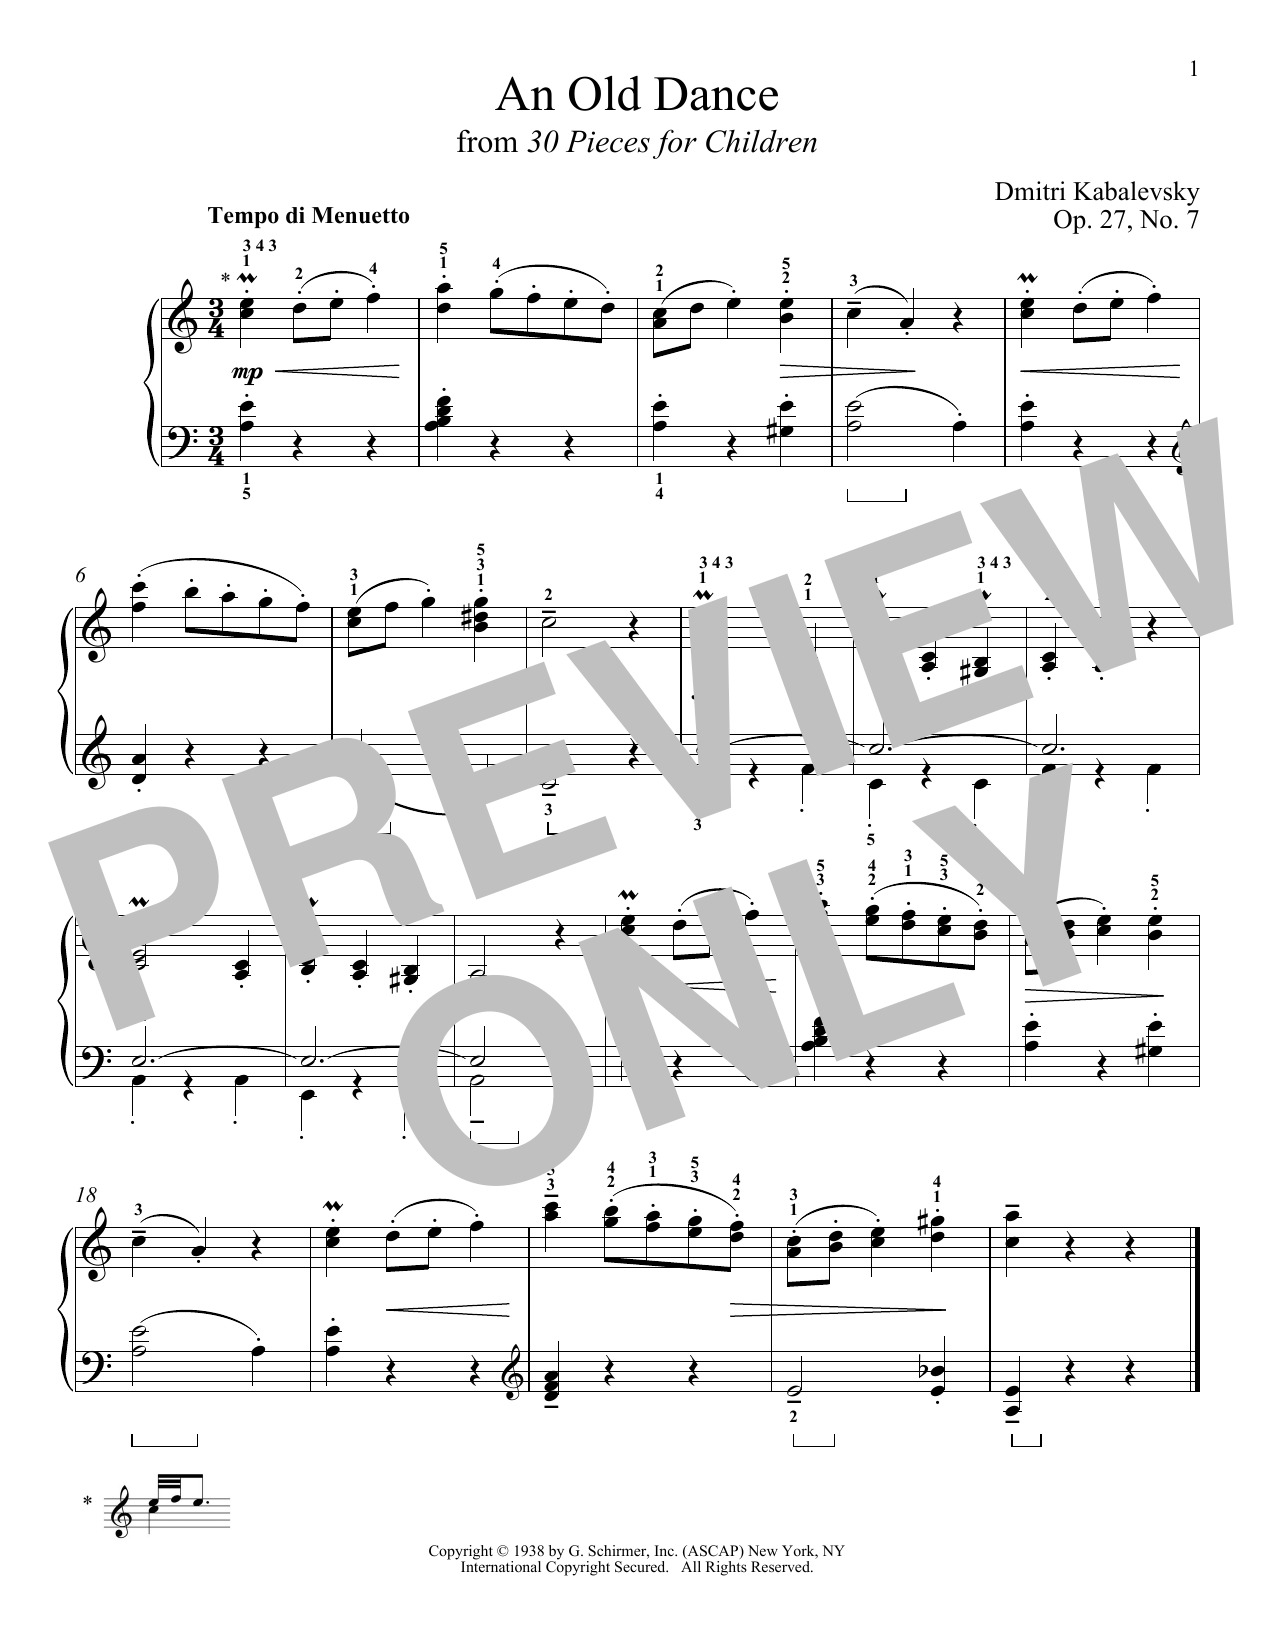 Dmitri Kabalevsky An Old Dance, Op. 27, No. 7 sheet music notes and chords. Download Printable PDF.